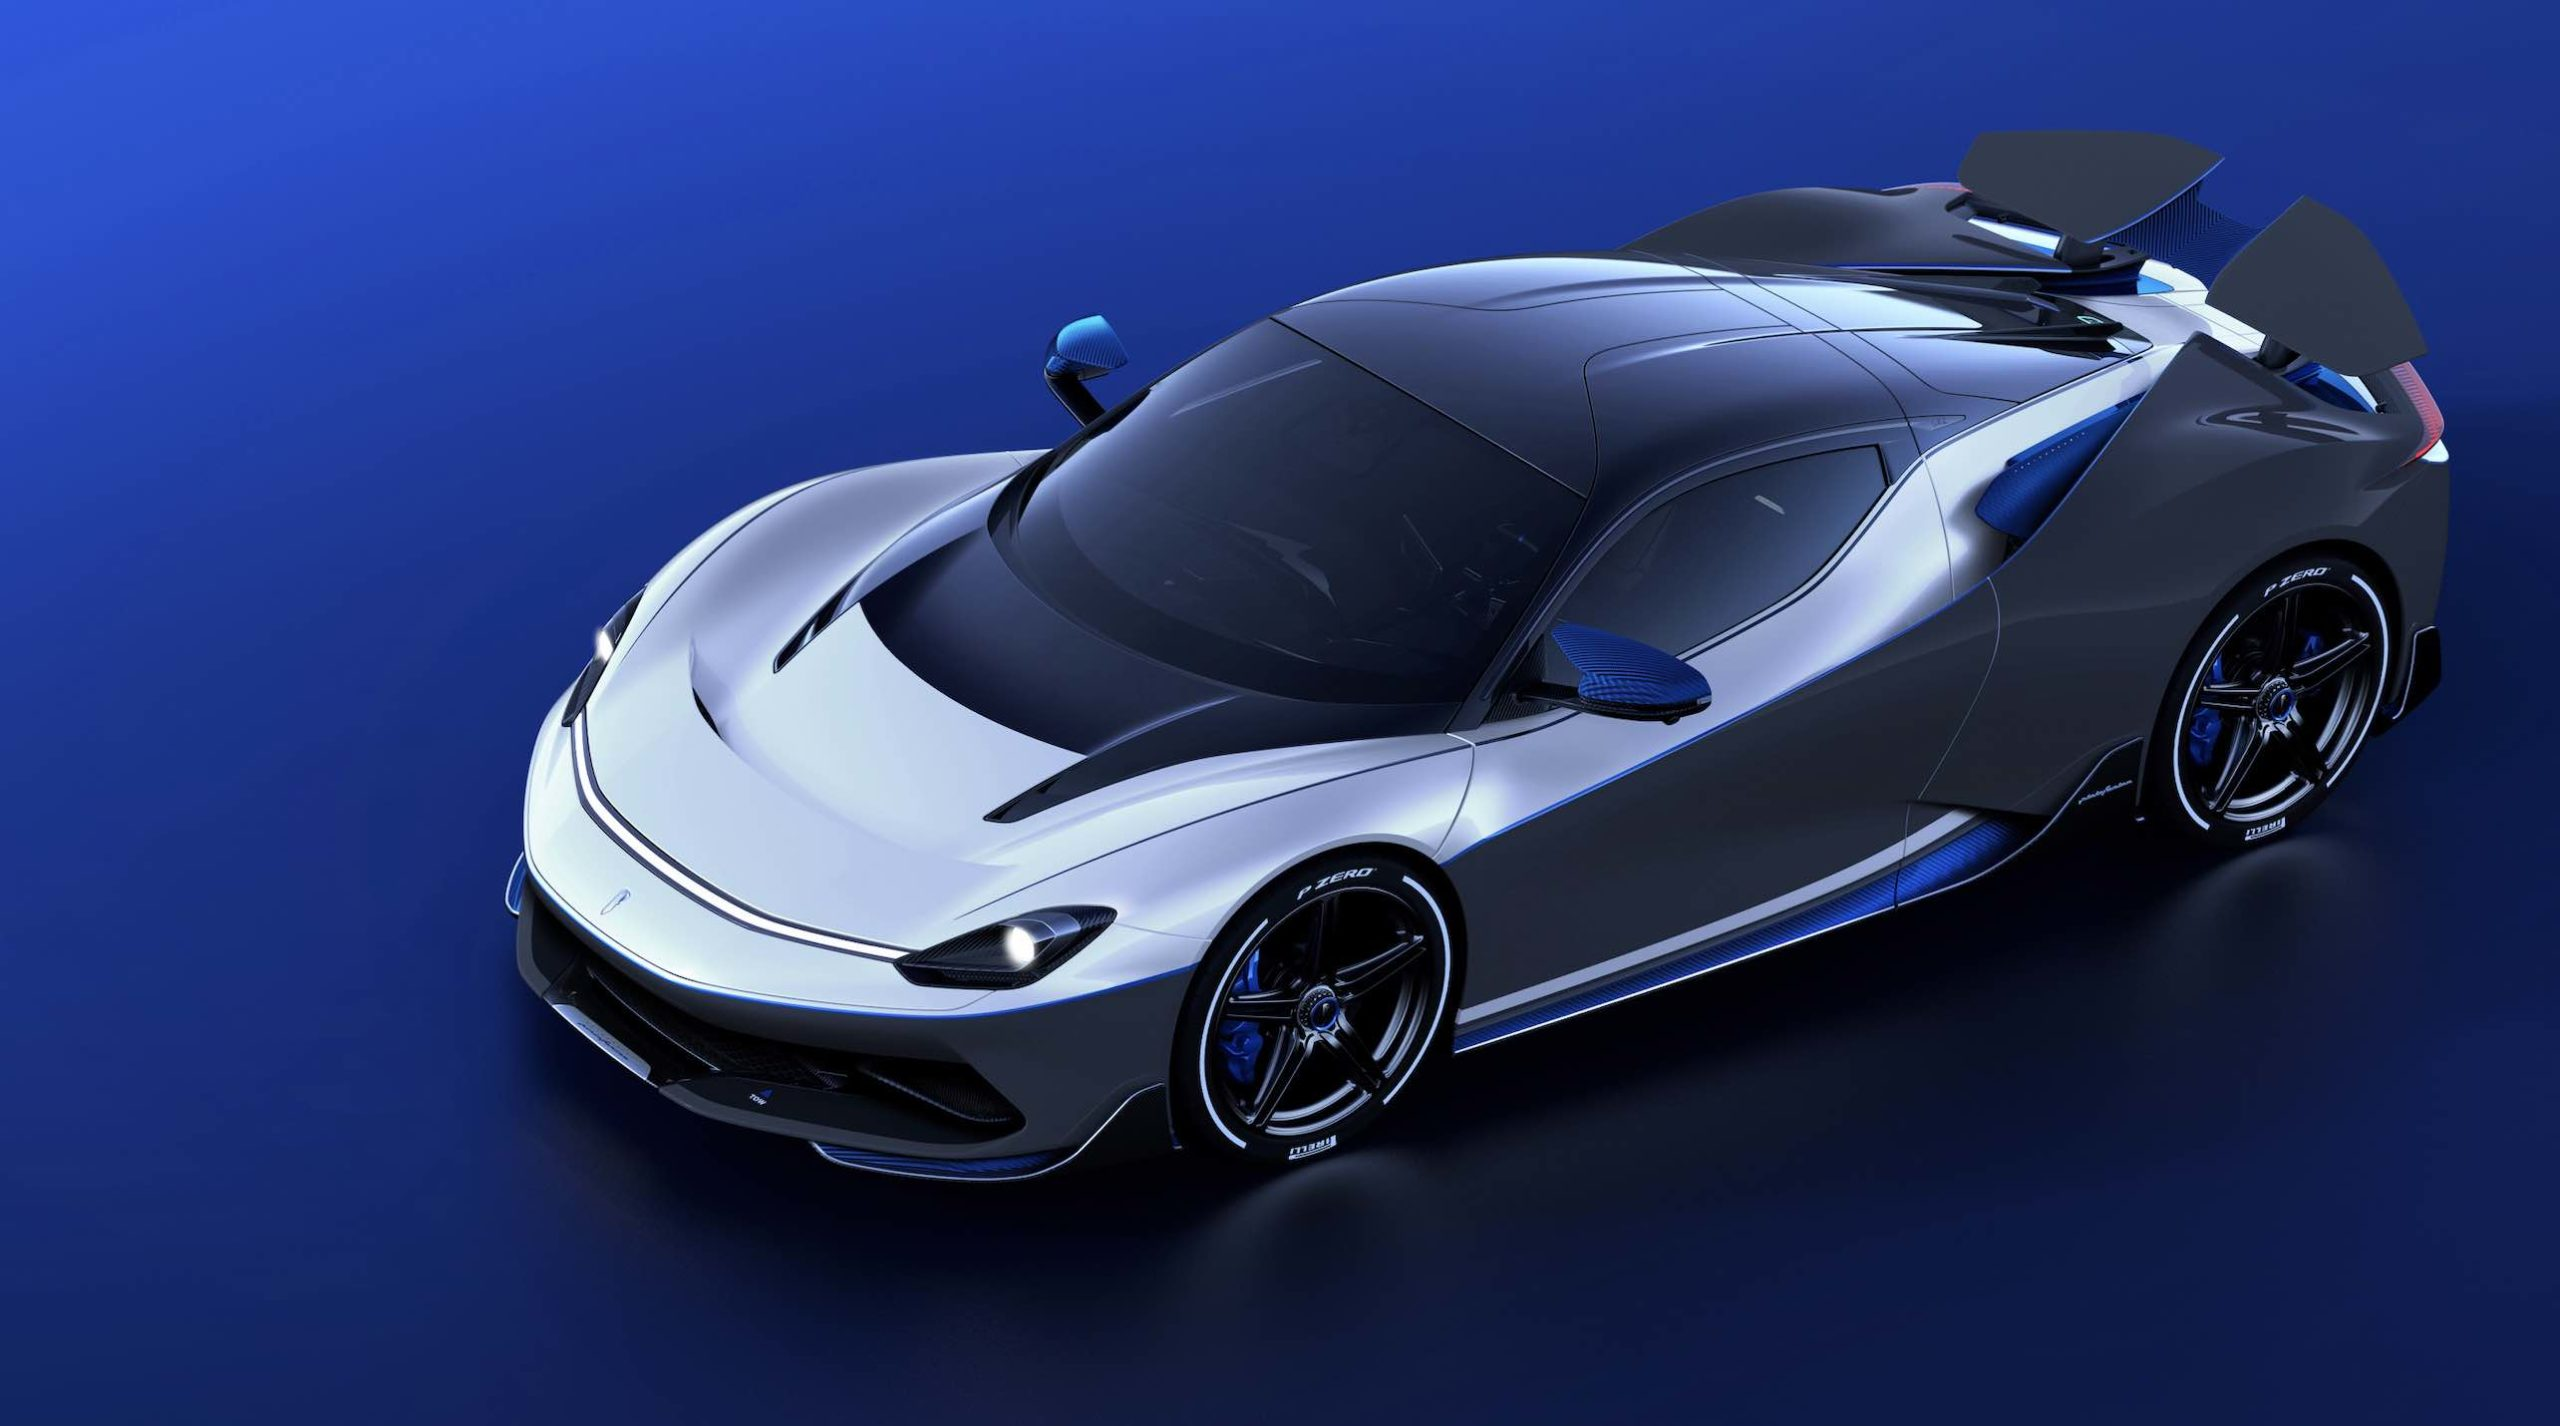 The new Pininfarina Battista Anniverario luxury car